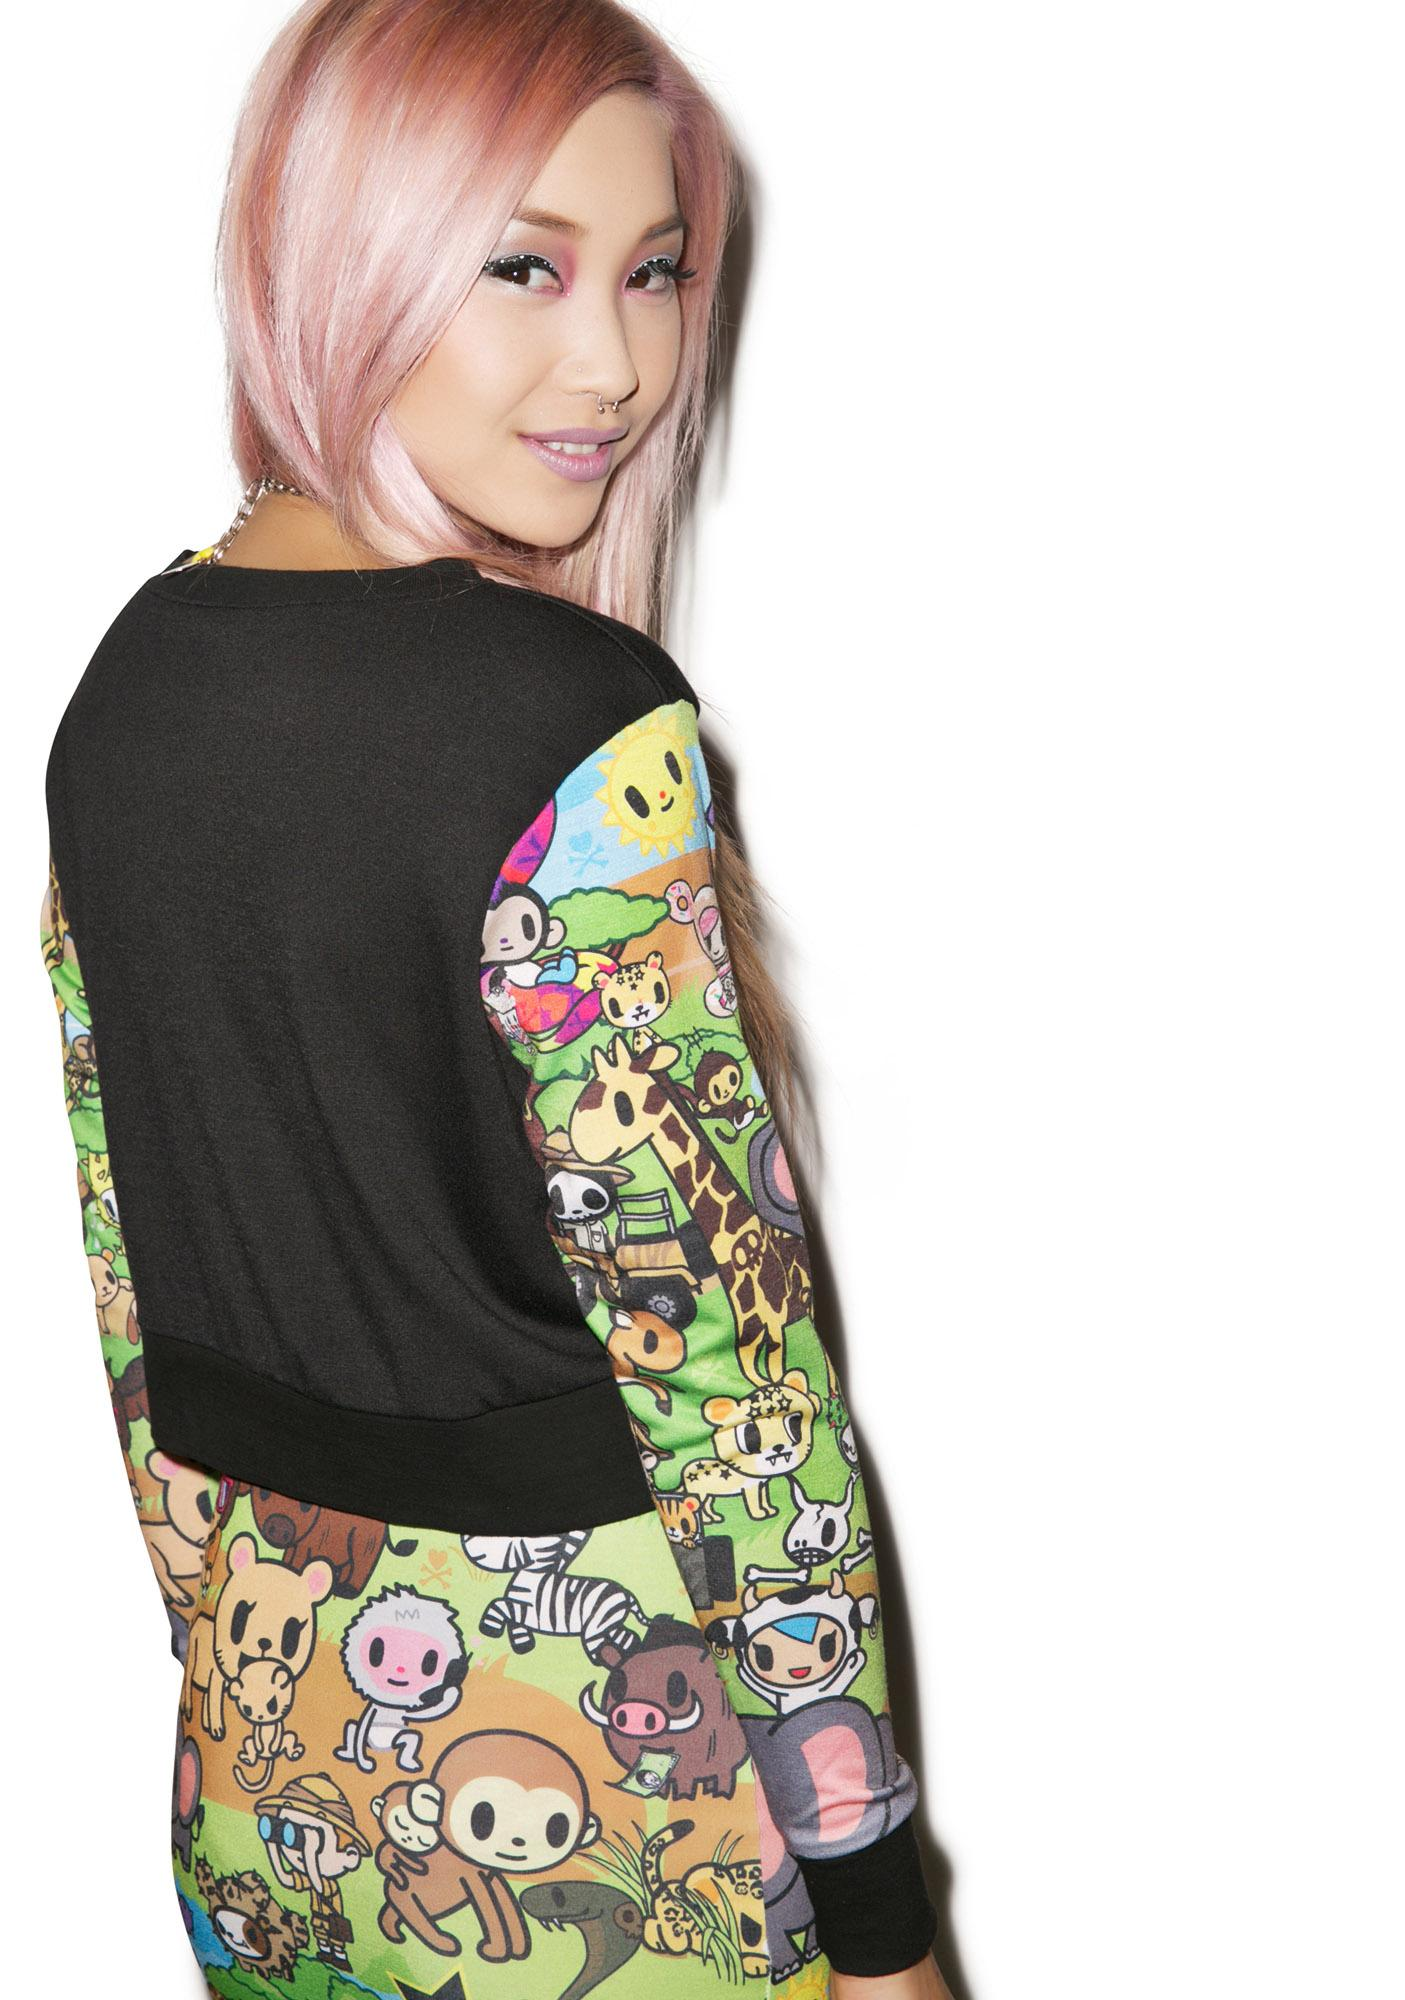 Japan L.A. Japan L.A. x Tokidoki Savannah Crop Pullover Top